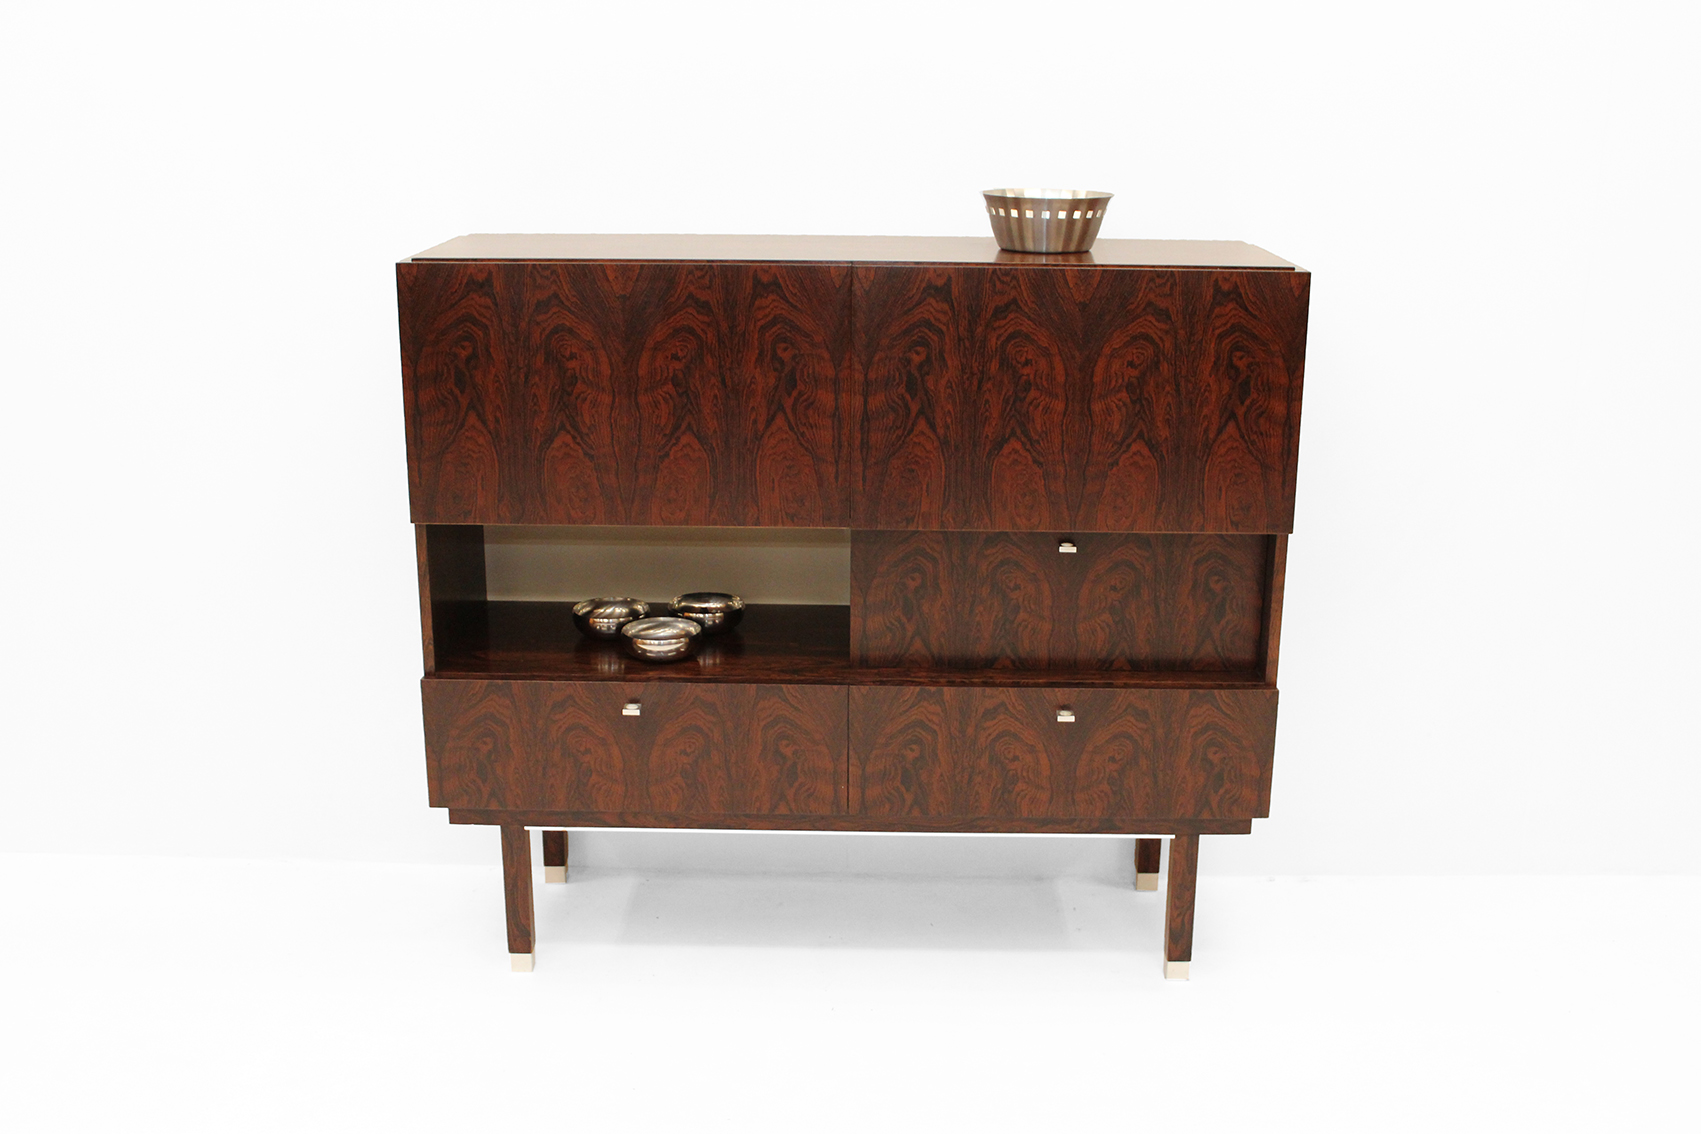 sixties barcabinet in brazilian rosewood